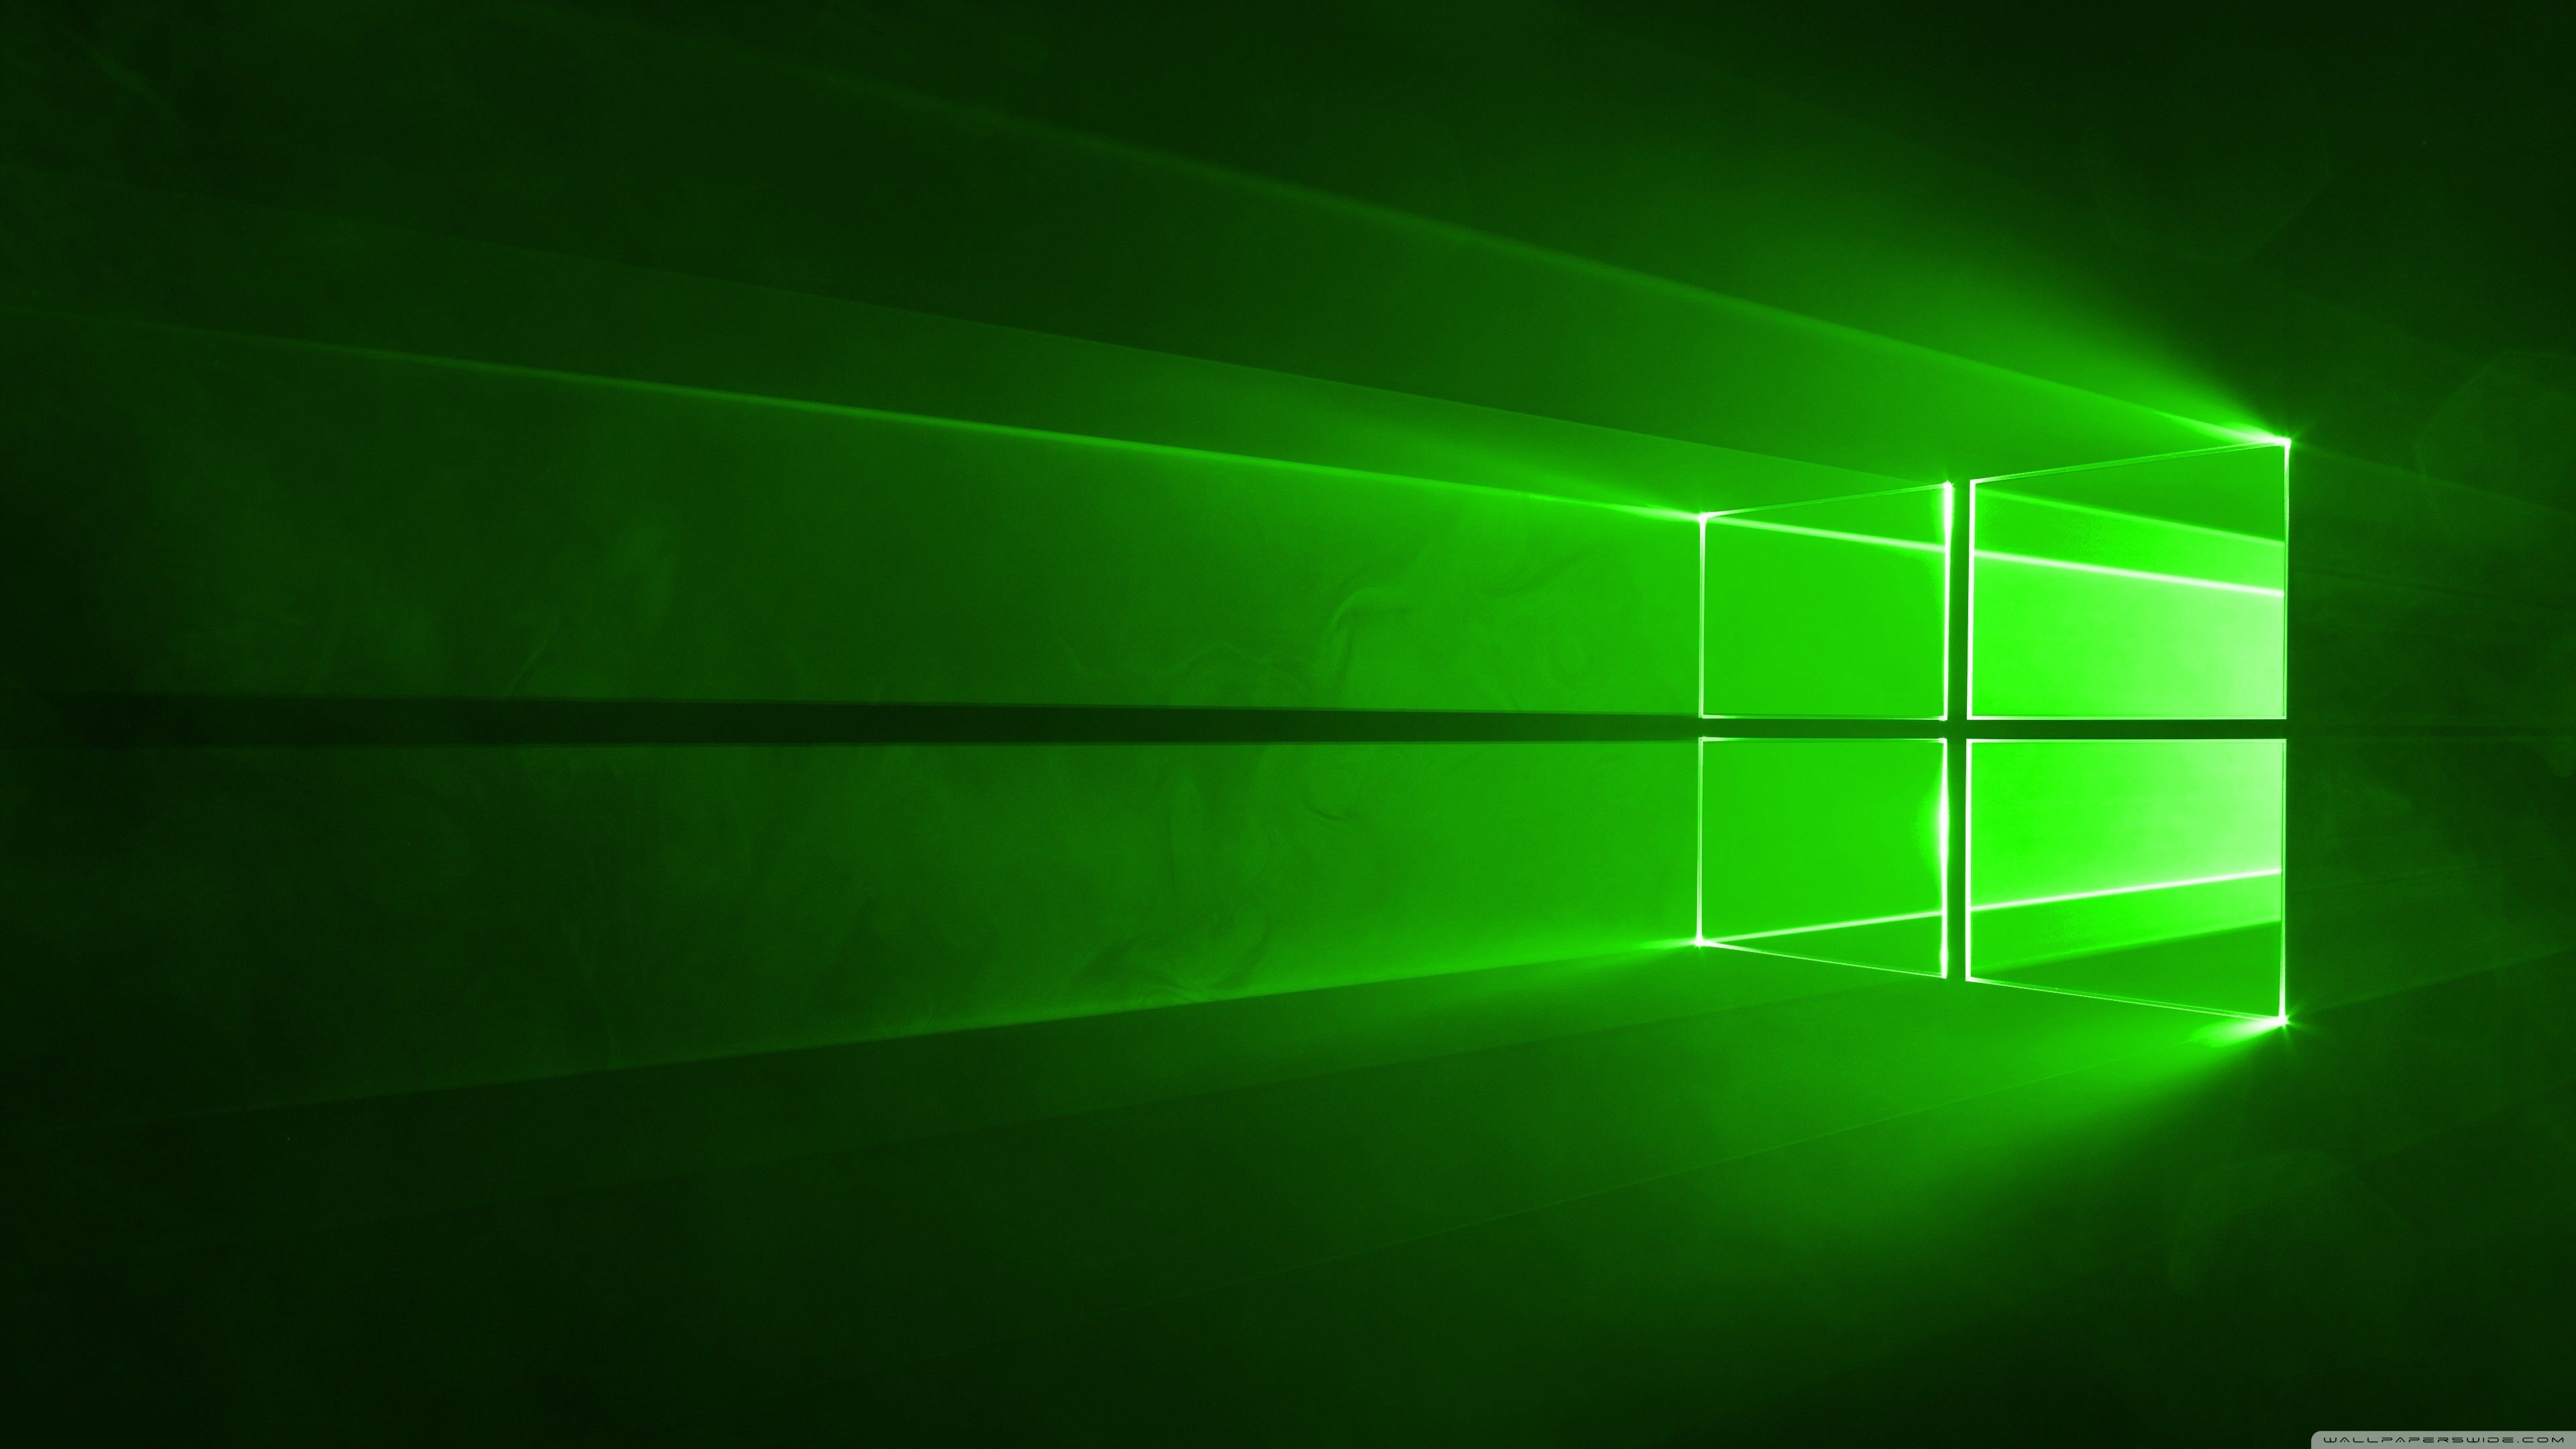 3840x2160 Windows 10 Green Hd Wide Wallpaper For Widescreen Wallpaper Windows 10 Desktop Wallpaper Windows Wallpaper